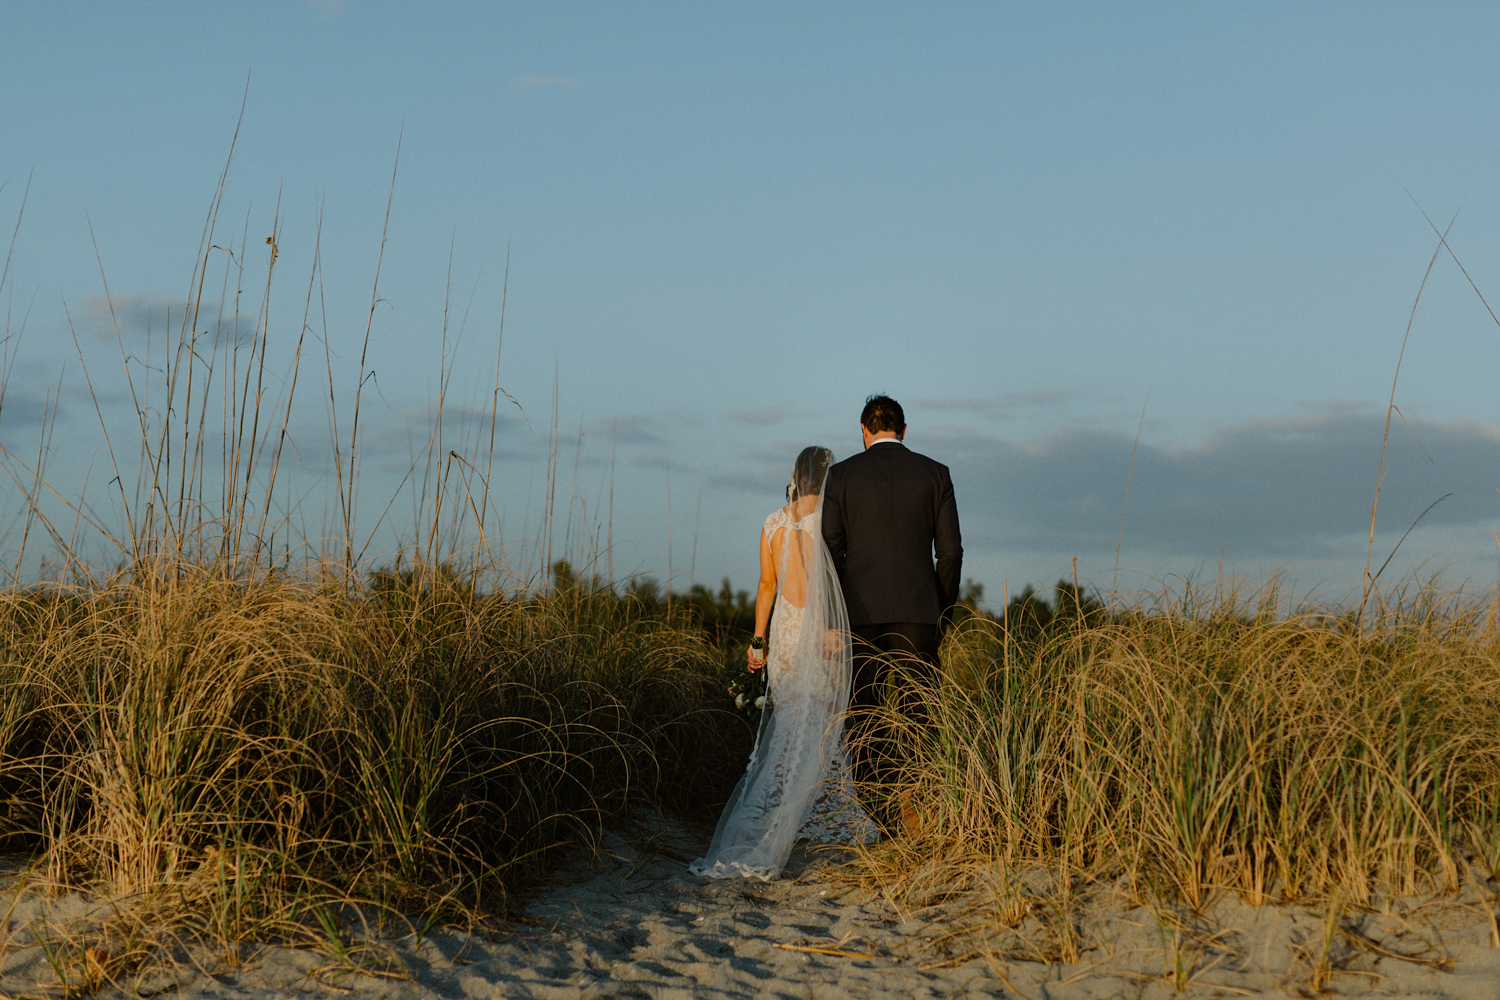 sarasota-wedding-photographer-221.jpg